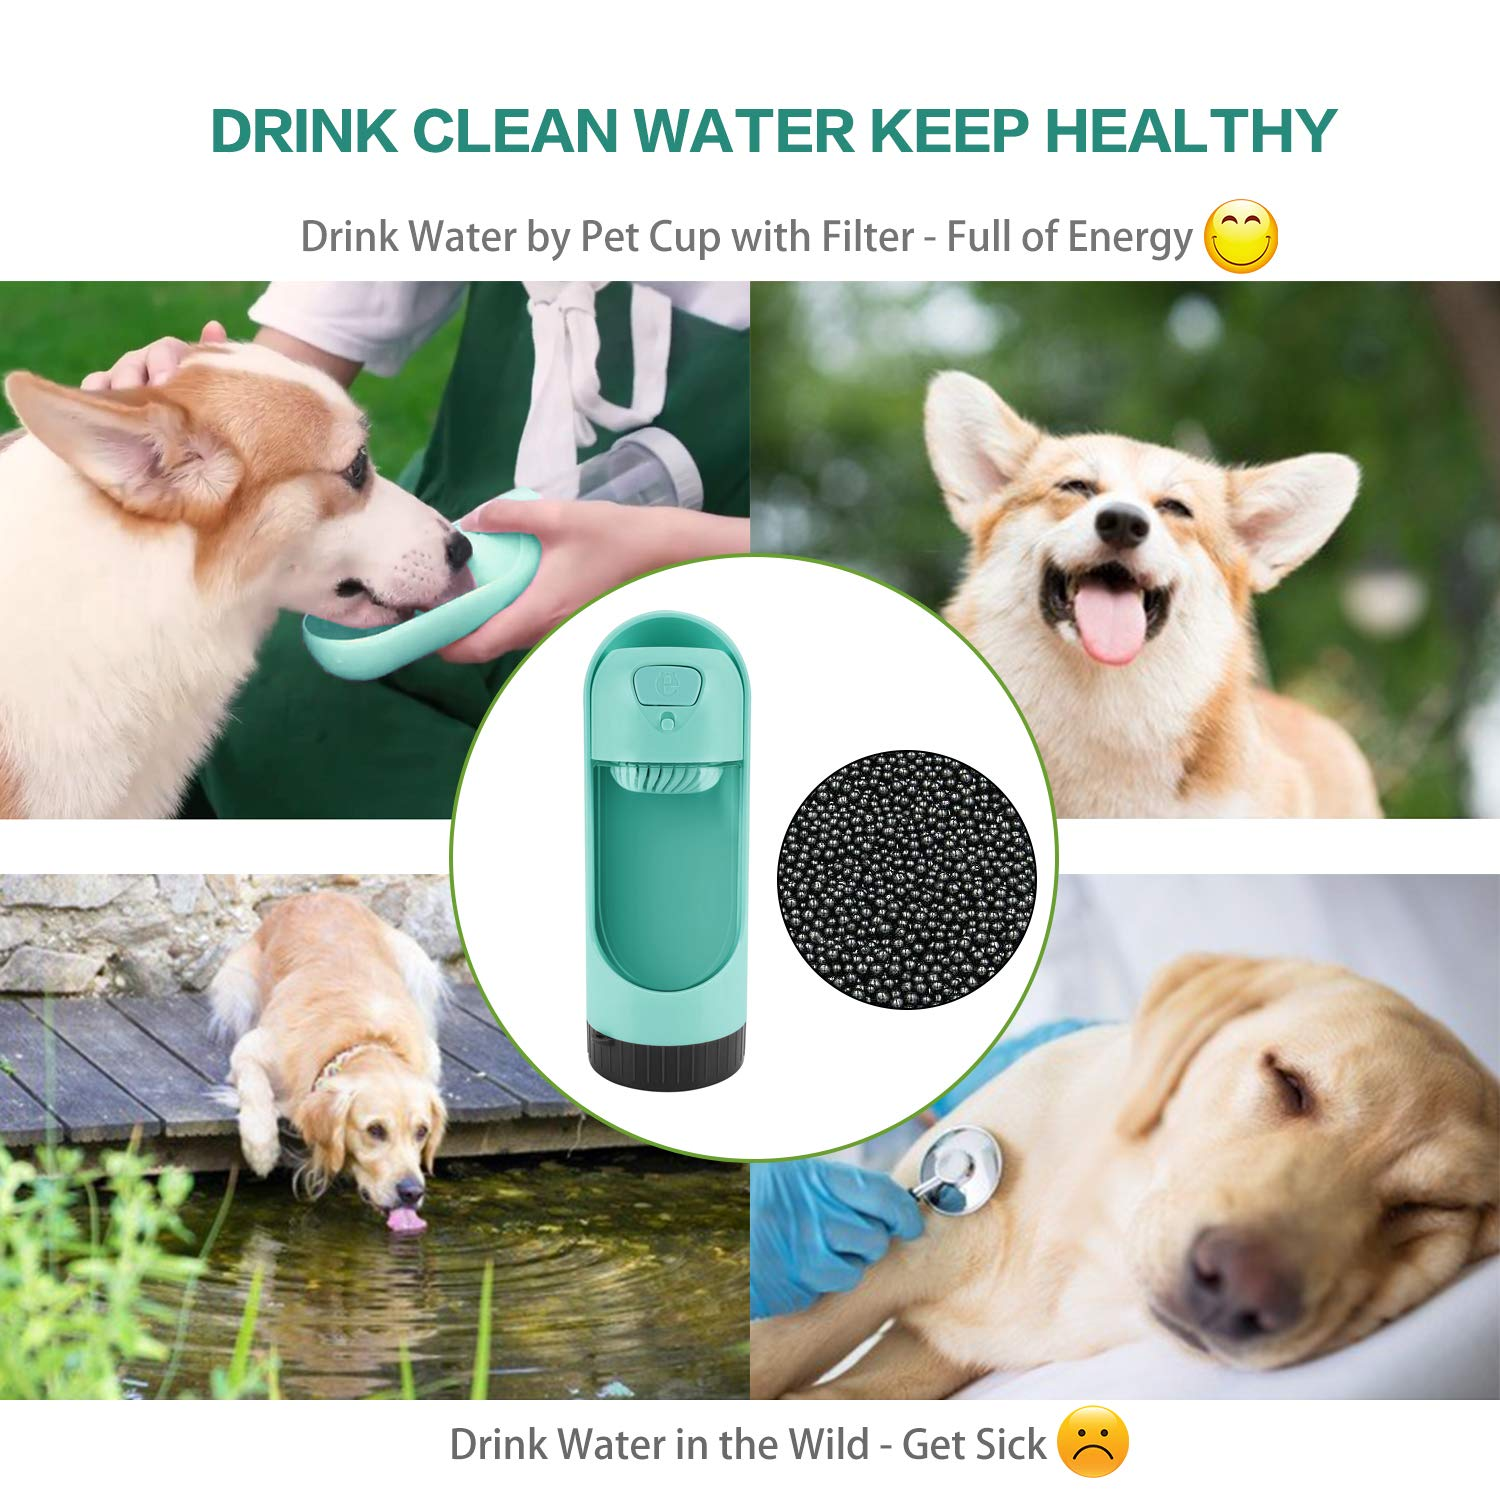 Dog Water Bottle, Leak Proof Drinking Bottle with Activated Carbon Filter, Portable Pet Travel Water Drink Cup Collapsible Water Dispenser Feeder, Safe and Durable for Small Cat Large Dog Outdoor